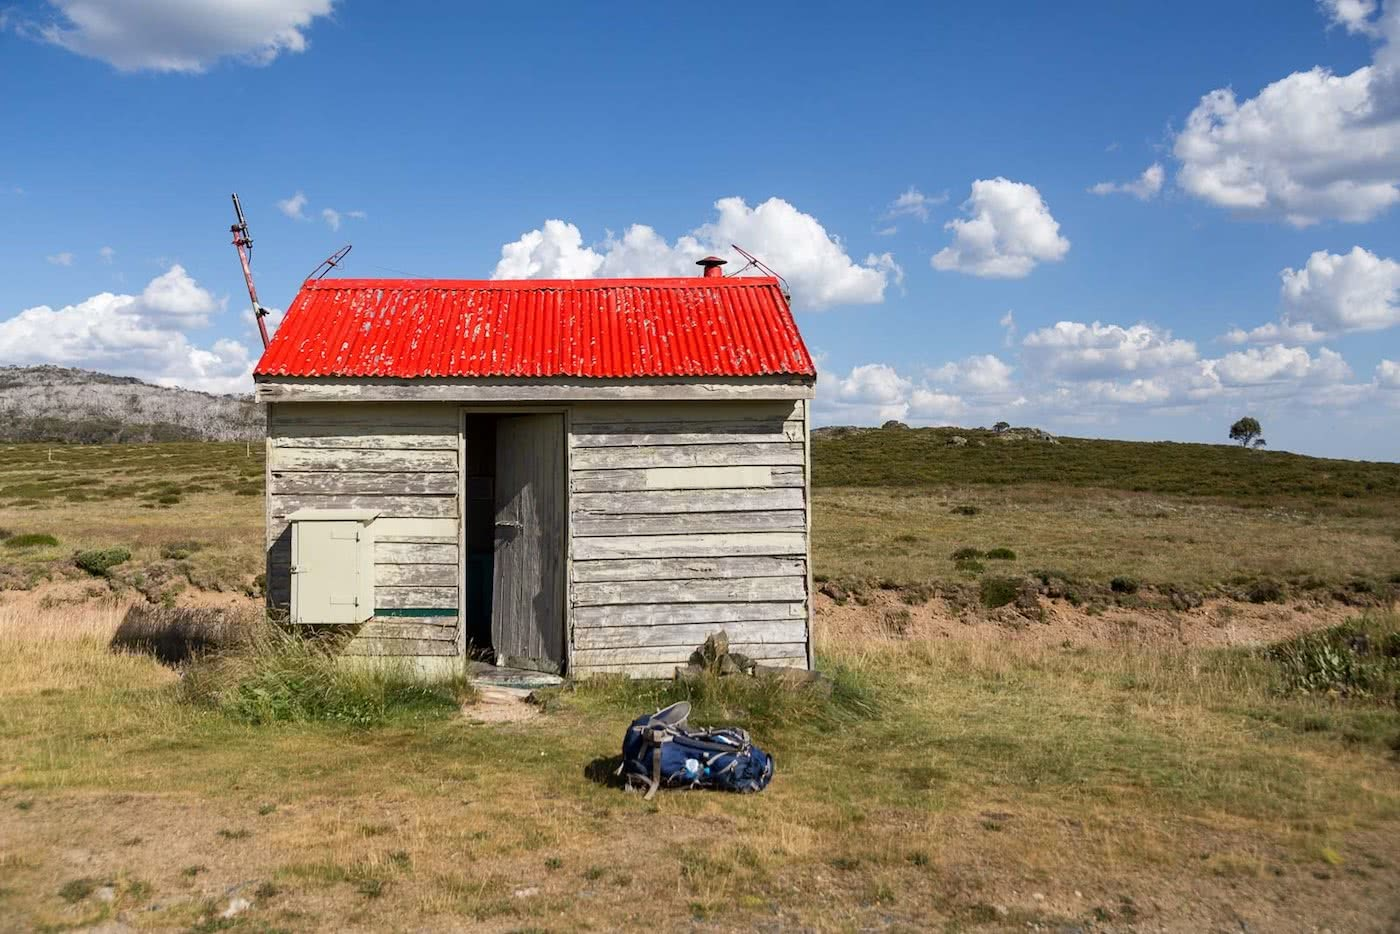 The High Plains on Foot – Four Day Falls Creek Circuit (VIC) Lachlan Fox backcountry hut, red tin roof